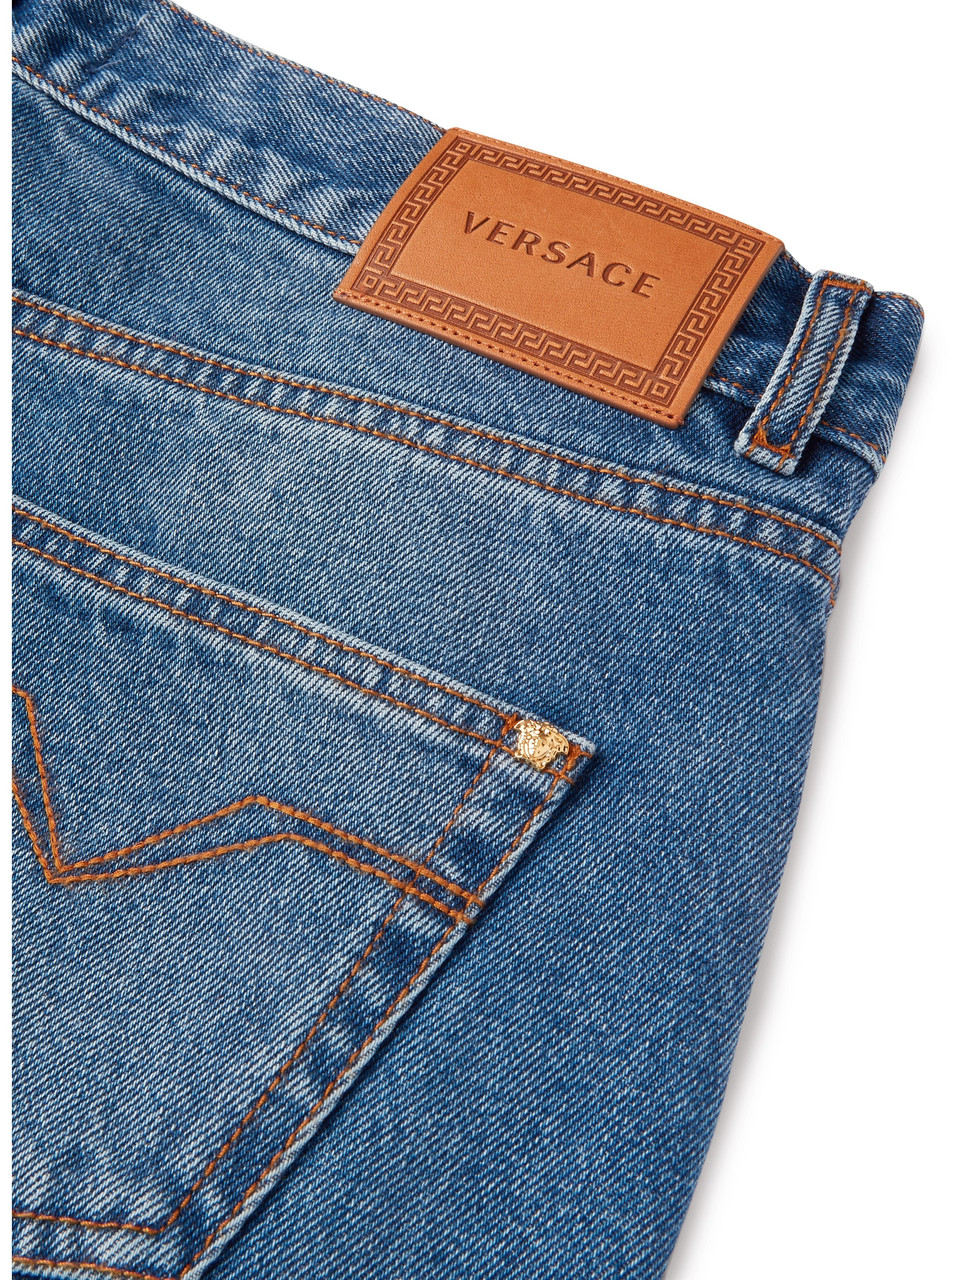 Versace Denim Jeans